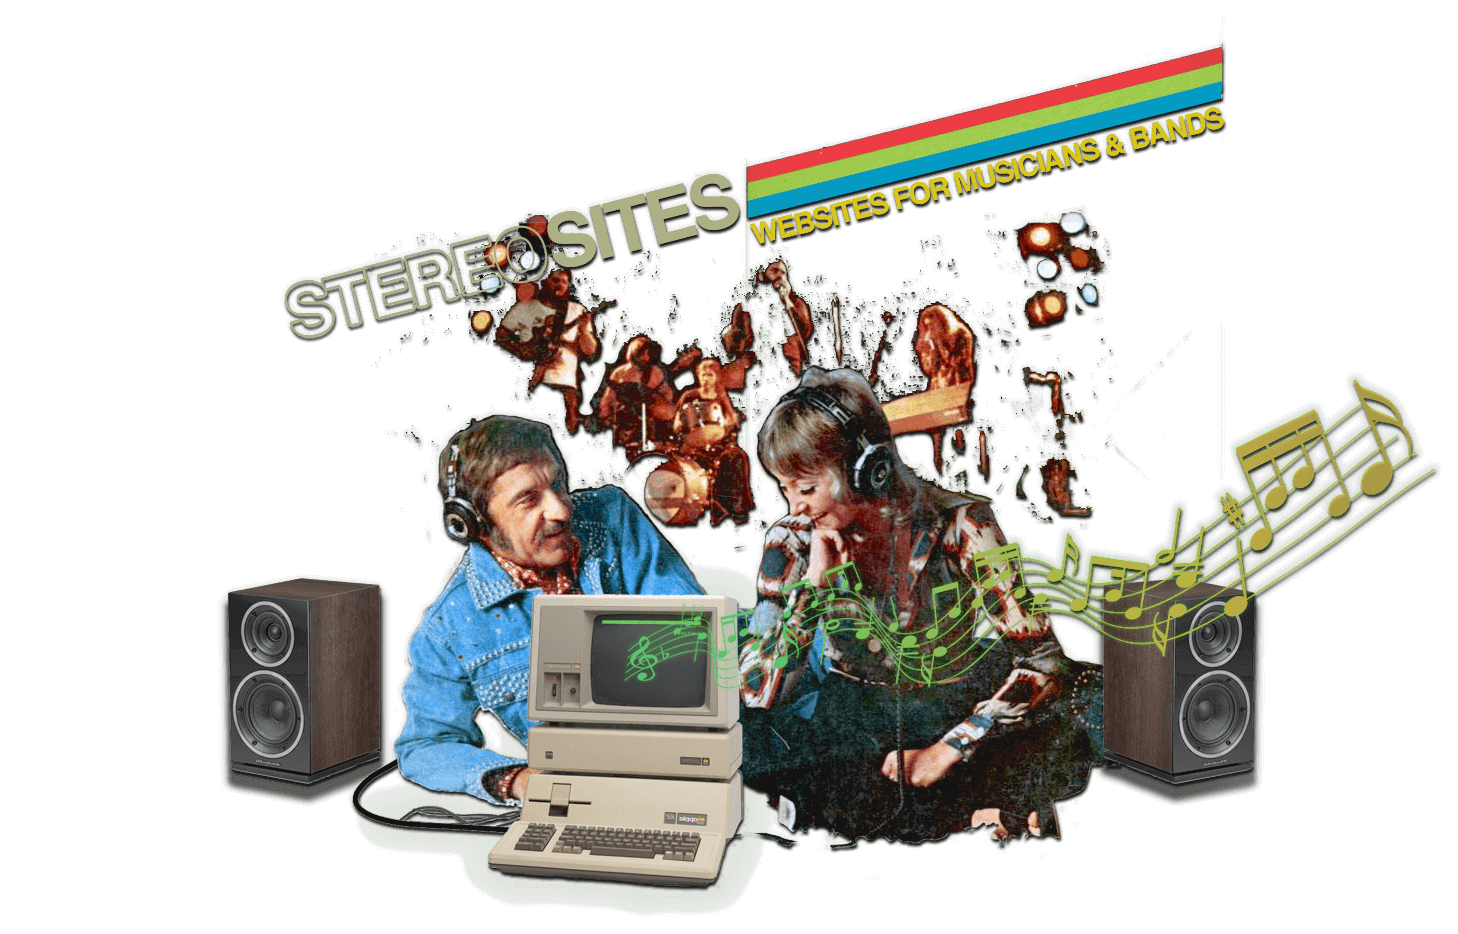 StereoSites Band Websites